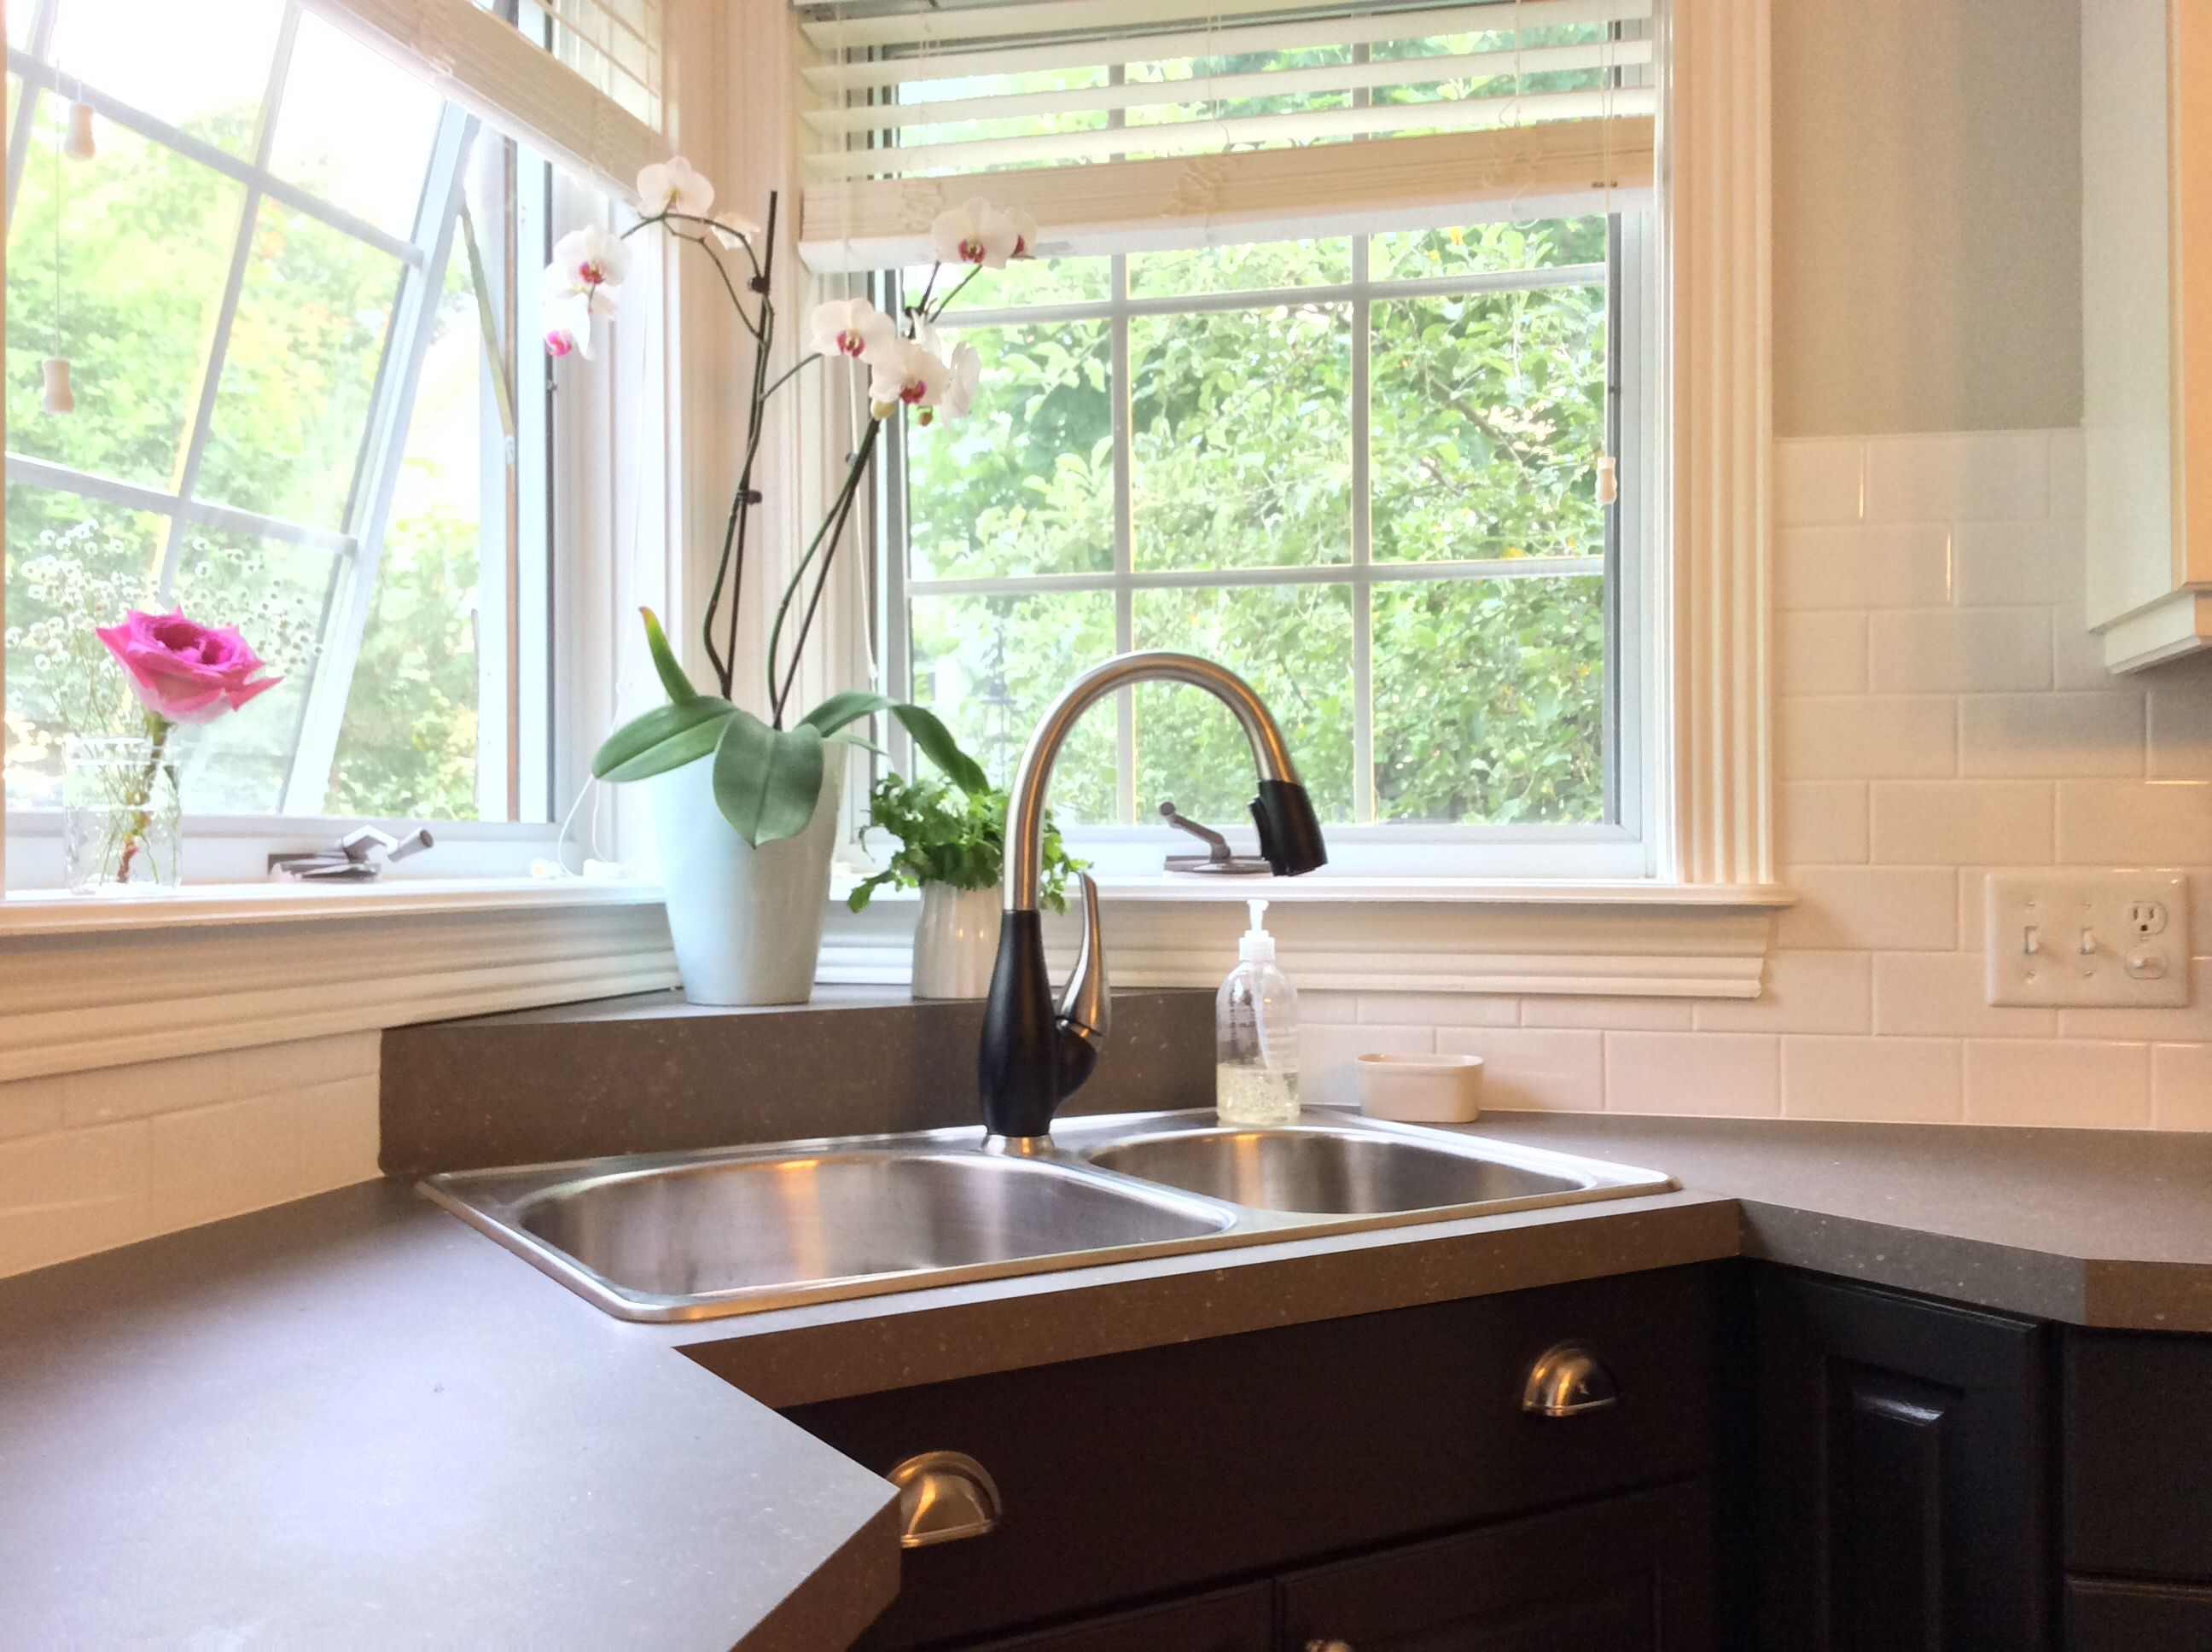 Corner window kitchen sink  corner sink featuring gooseneck pull out delta faucet and pretty